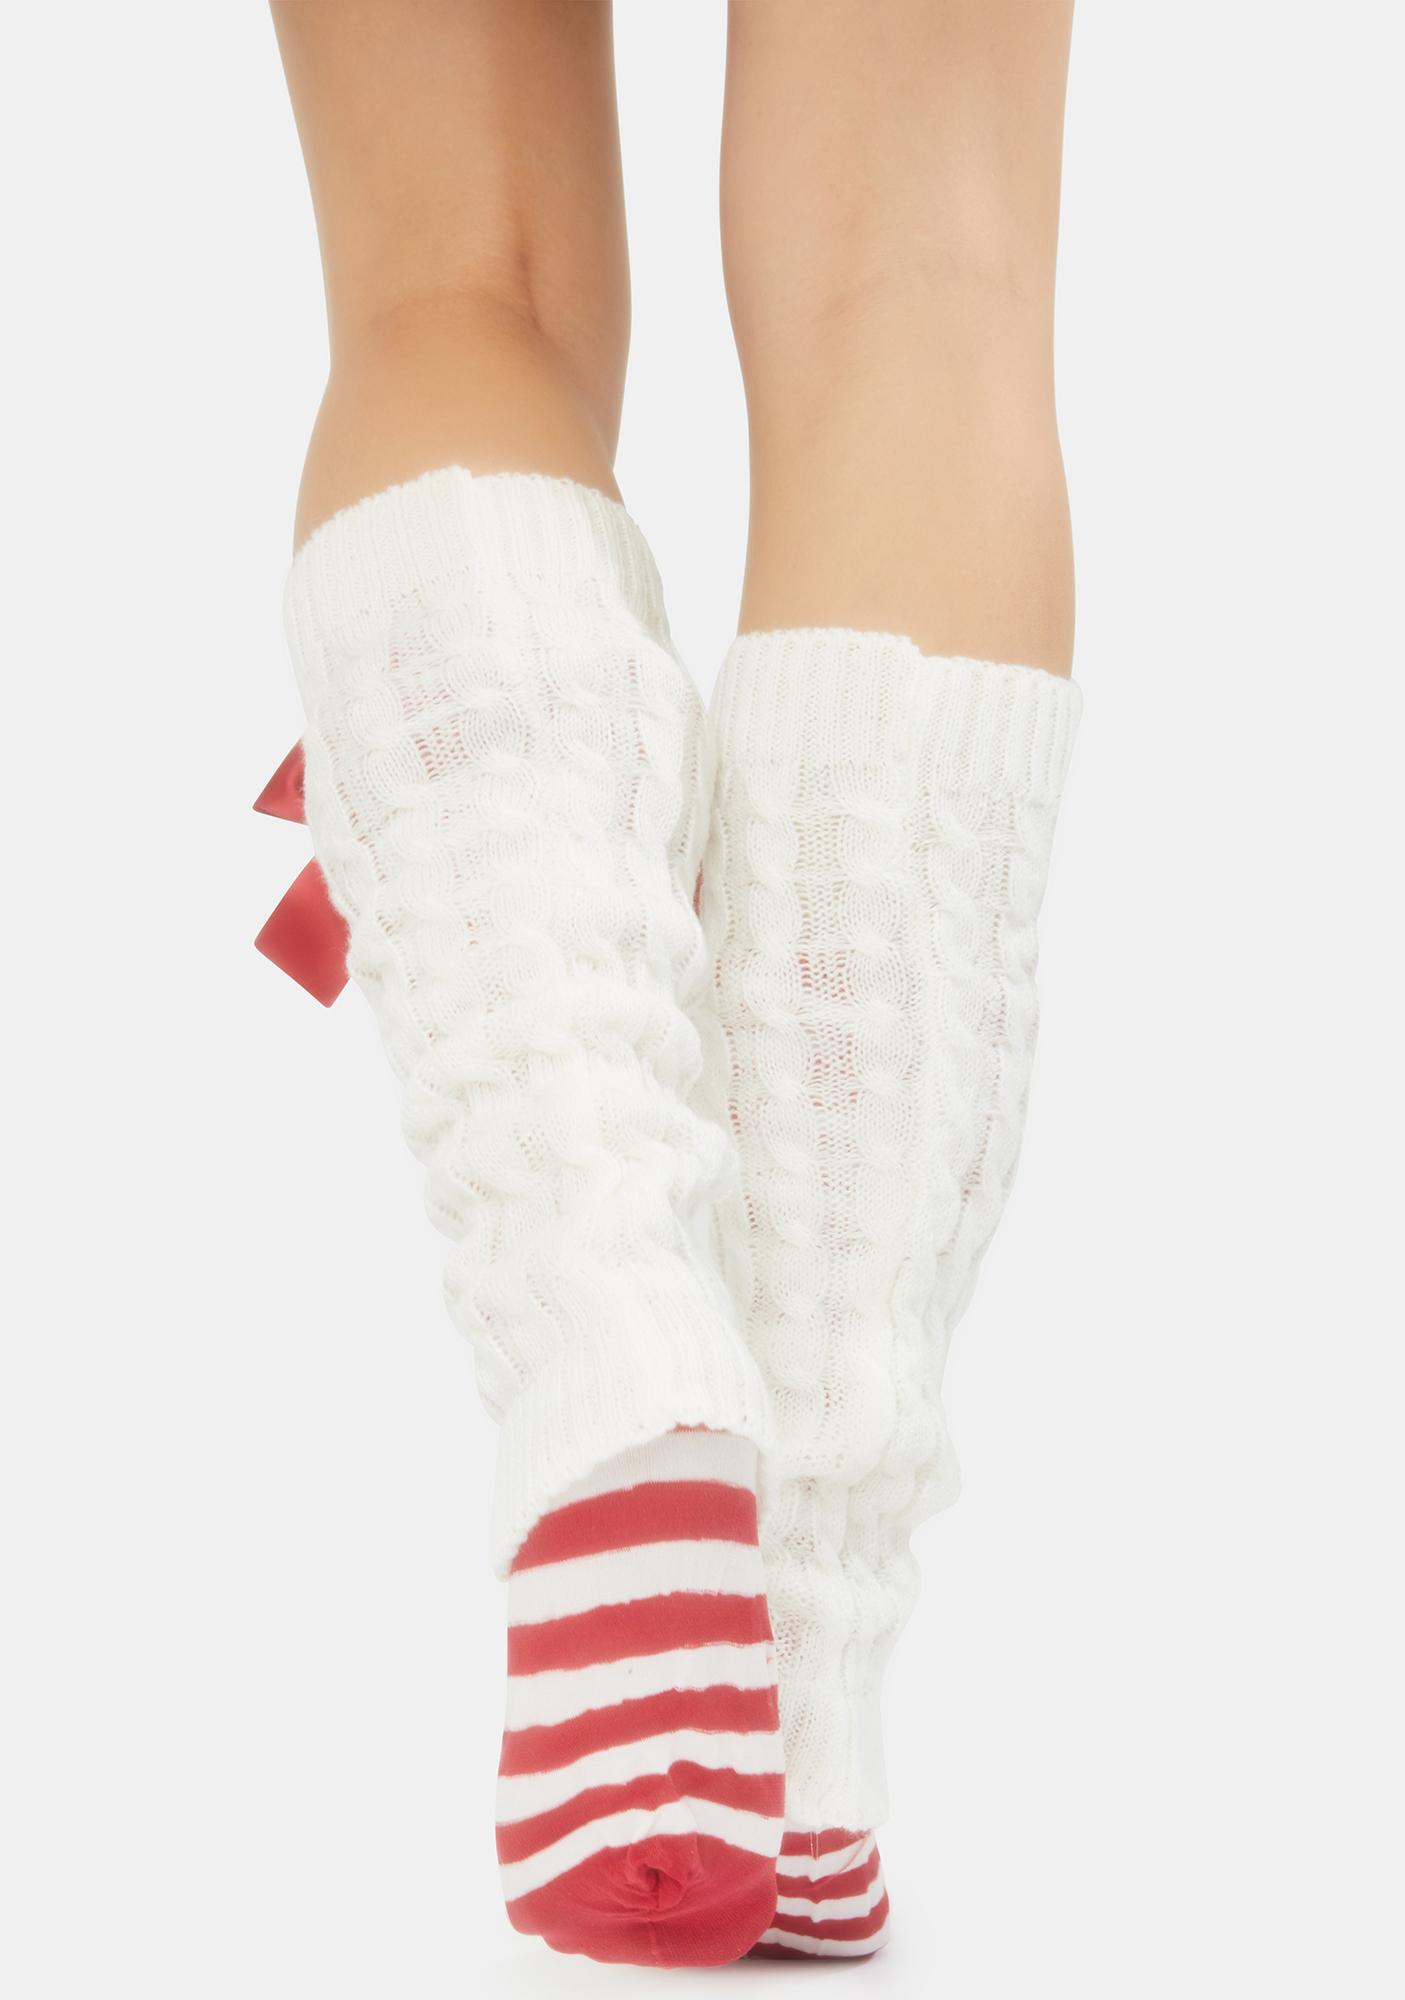 Candy Cane Knitted Legwarmers